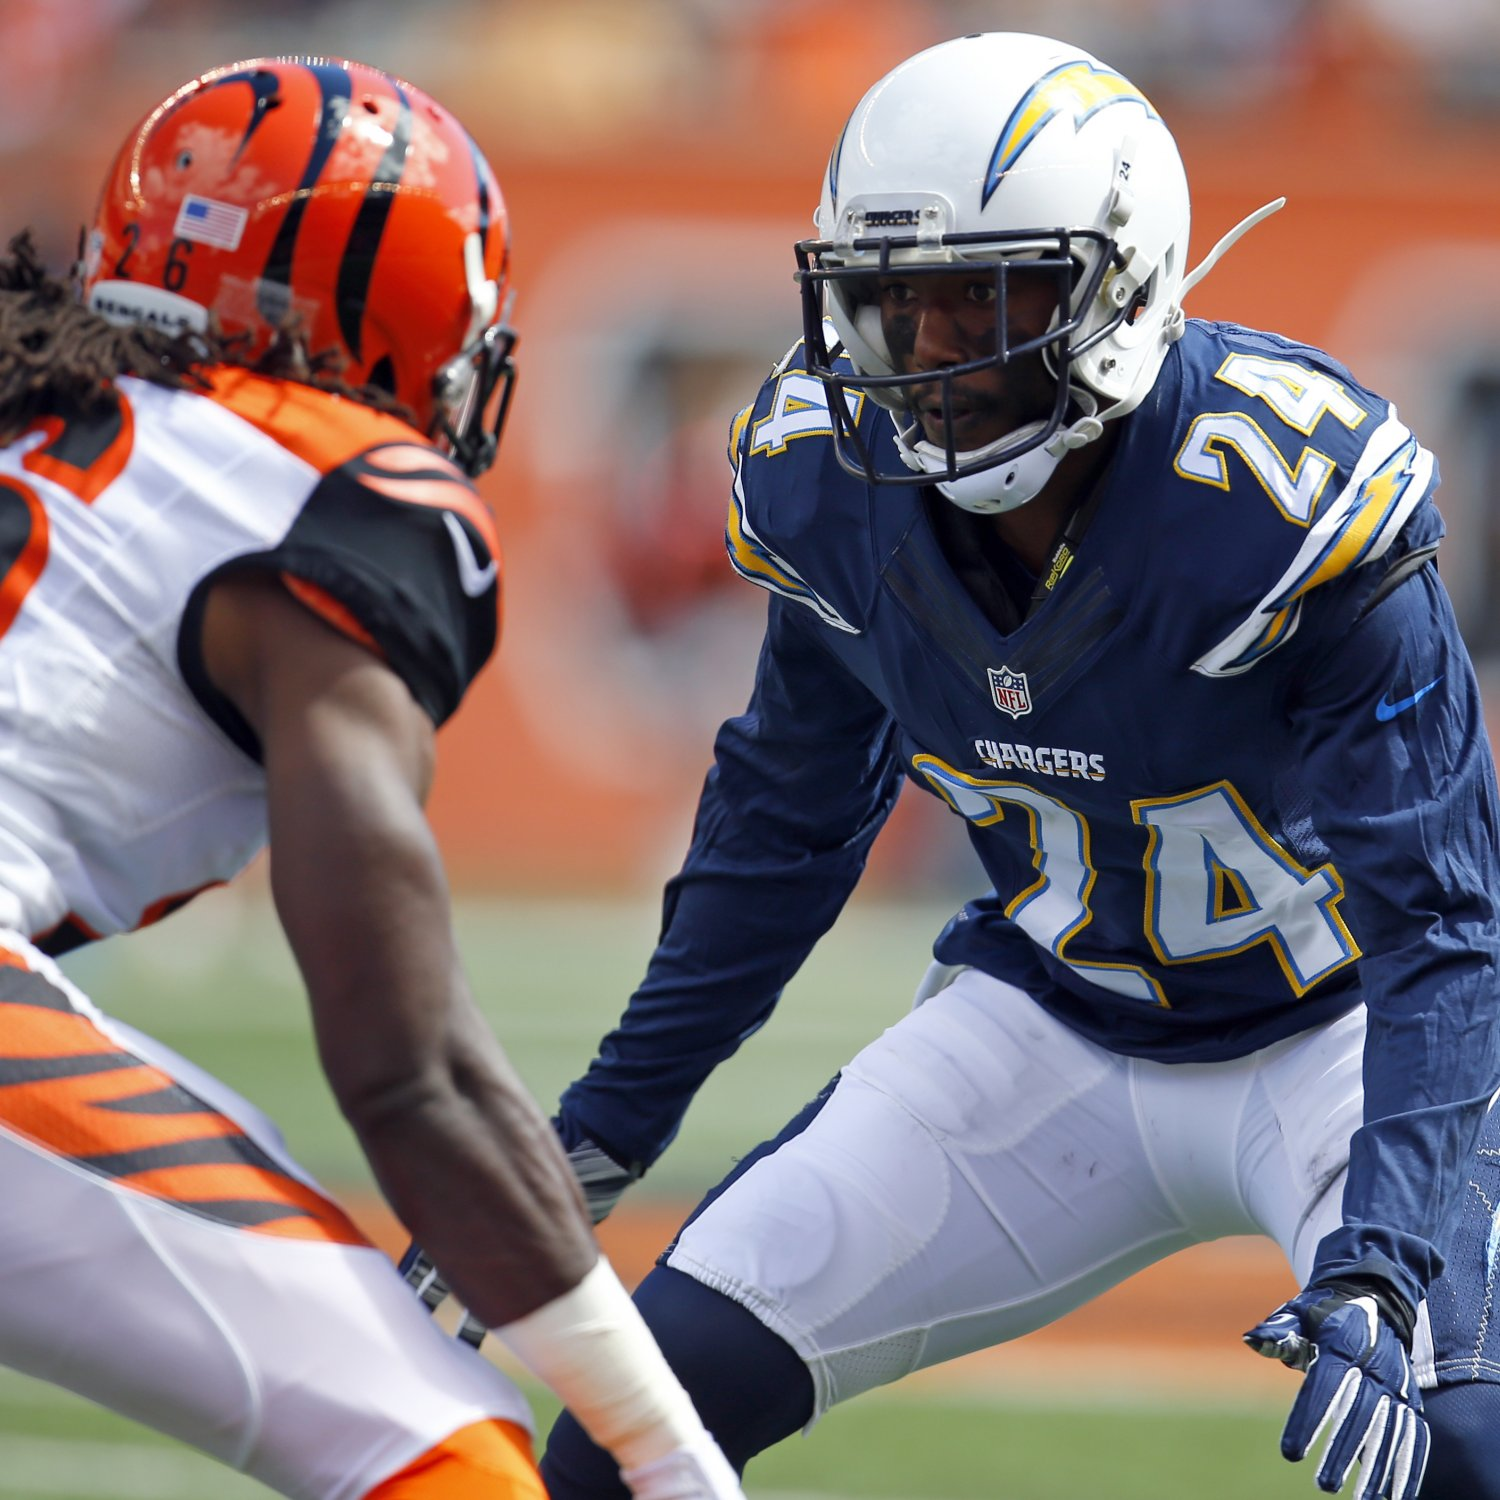 San Diego Chargers Cbs: Brandon Flowers Injury: Updates On Chargers CB's